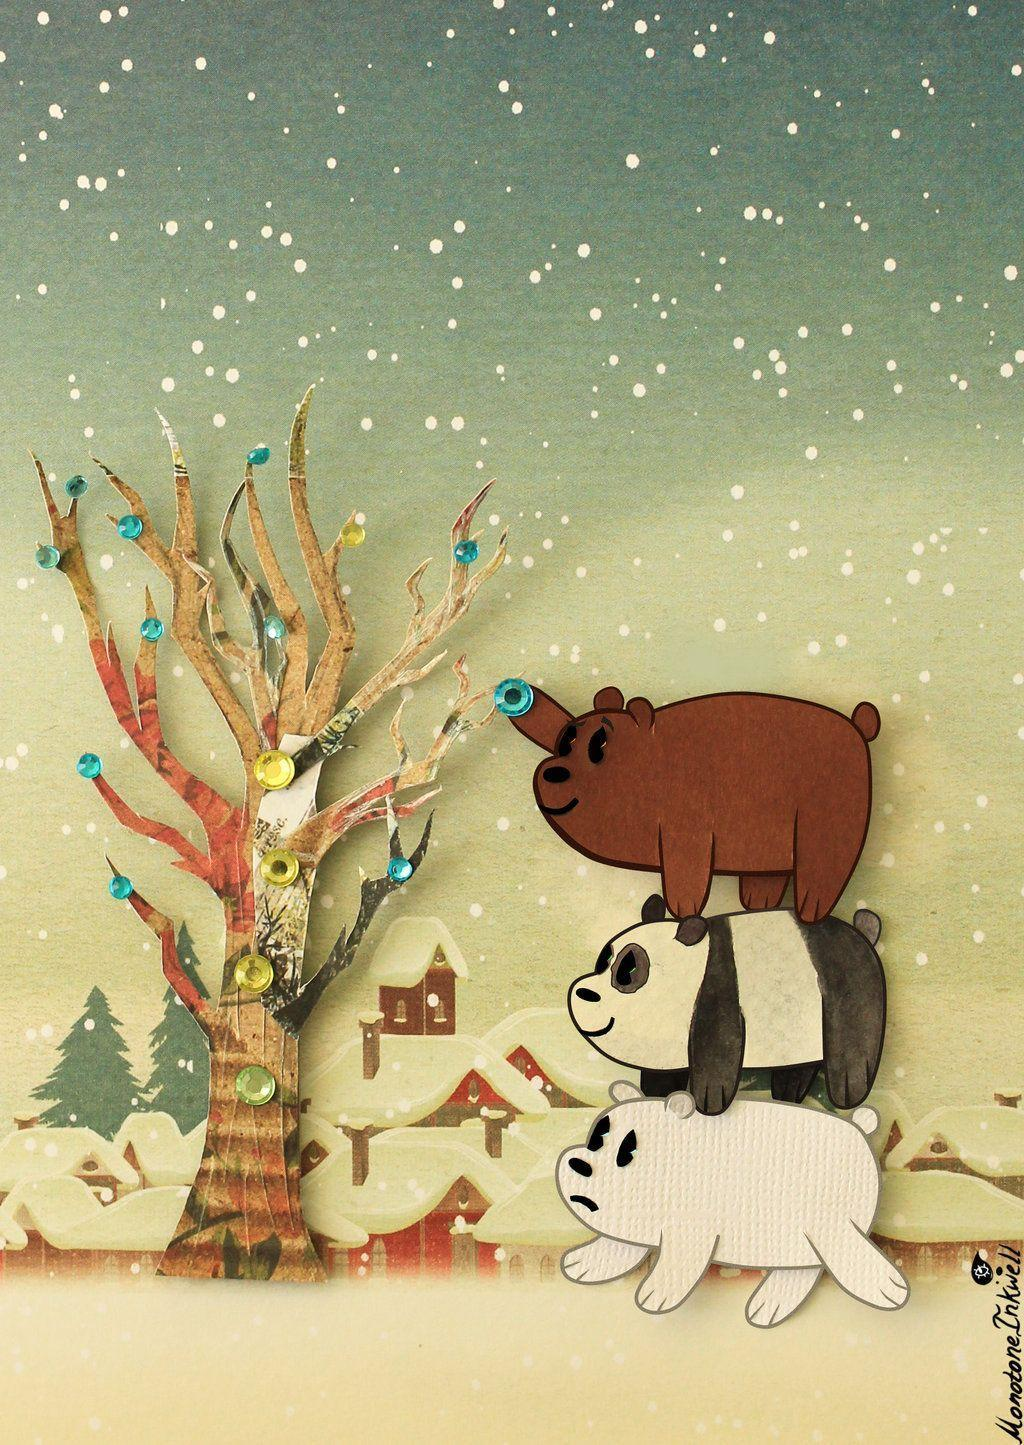 17 Best images about We Bare Bears on Pinterest | Posts, Chloe and We